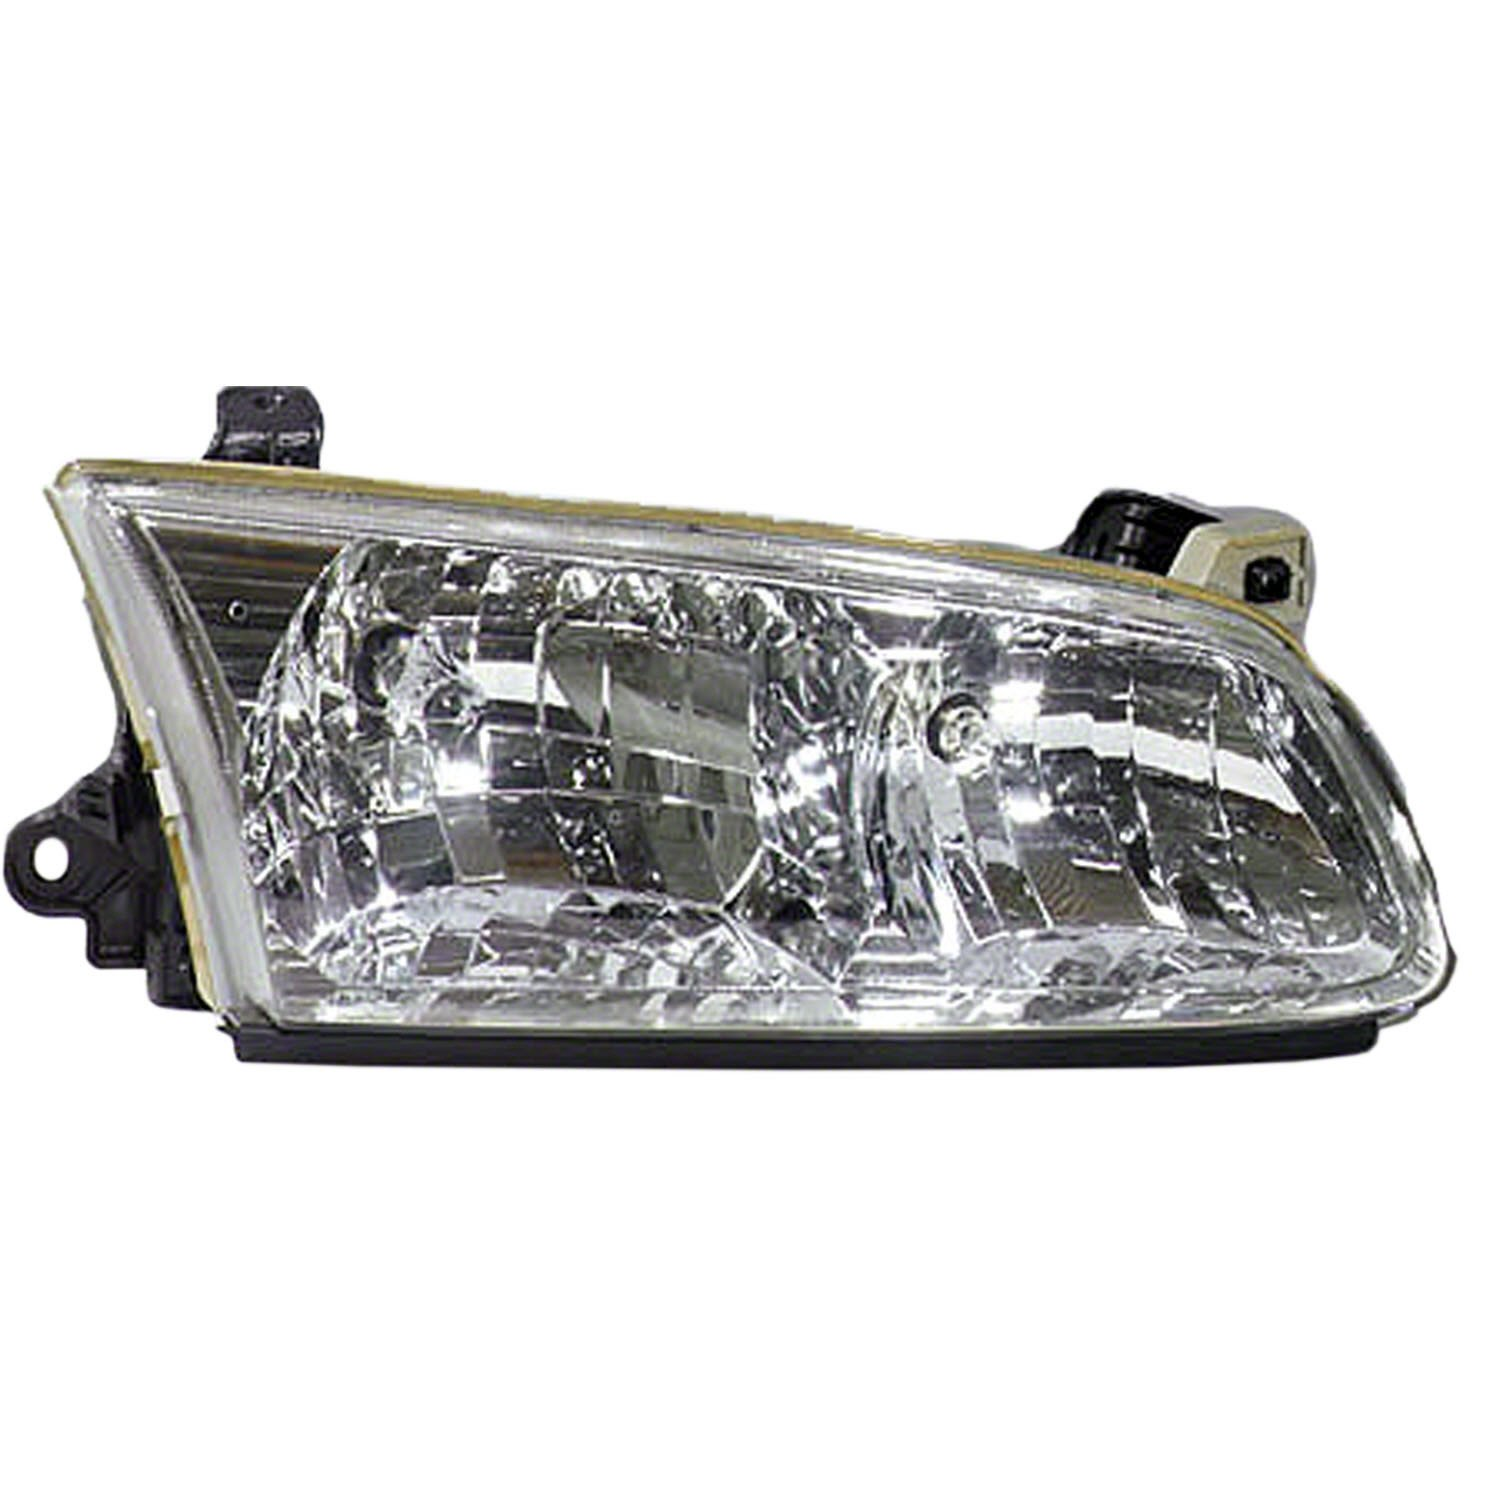 TO2503130 Headlight for 00-01 Toyota Camry Passenger Side